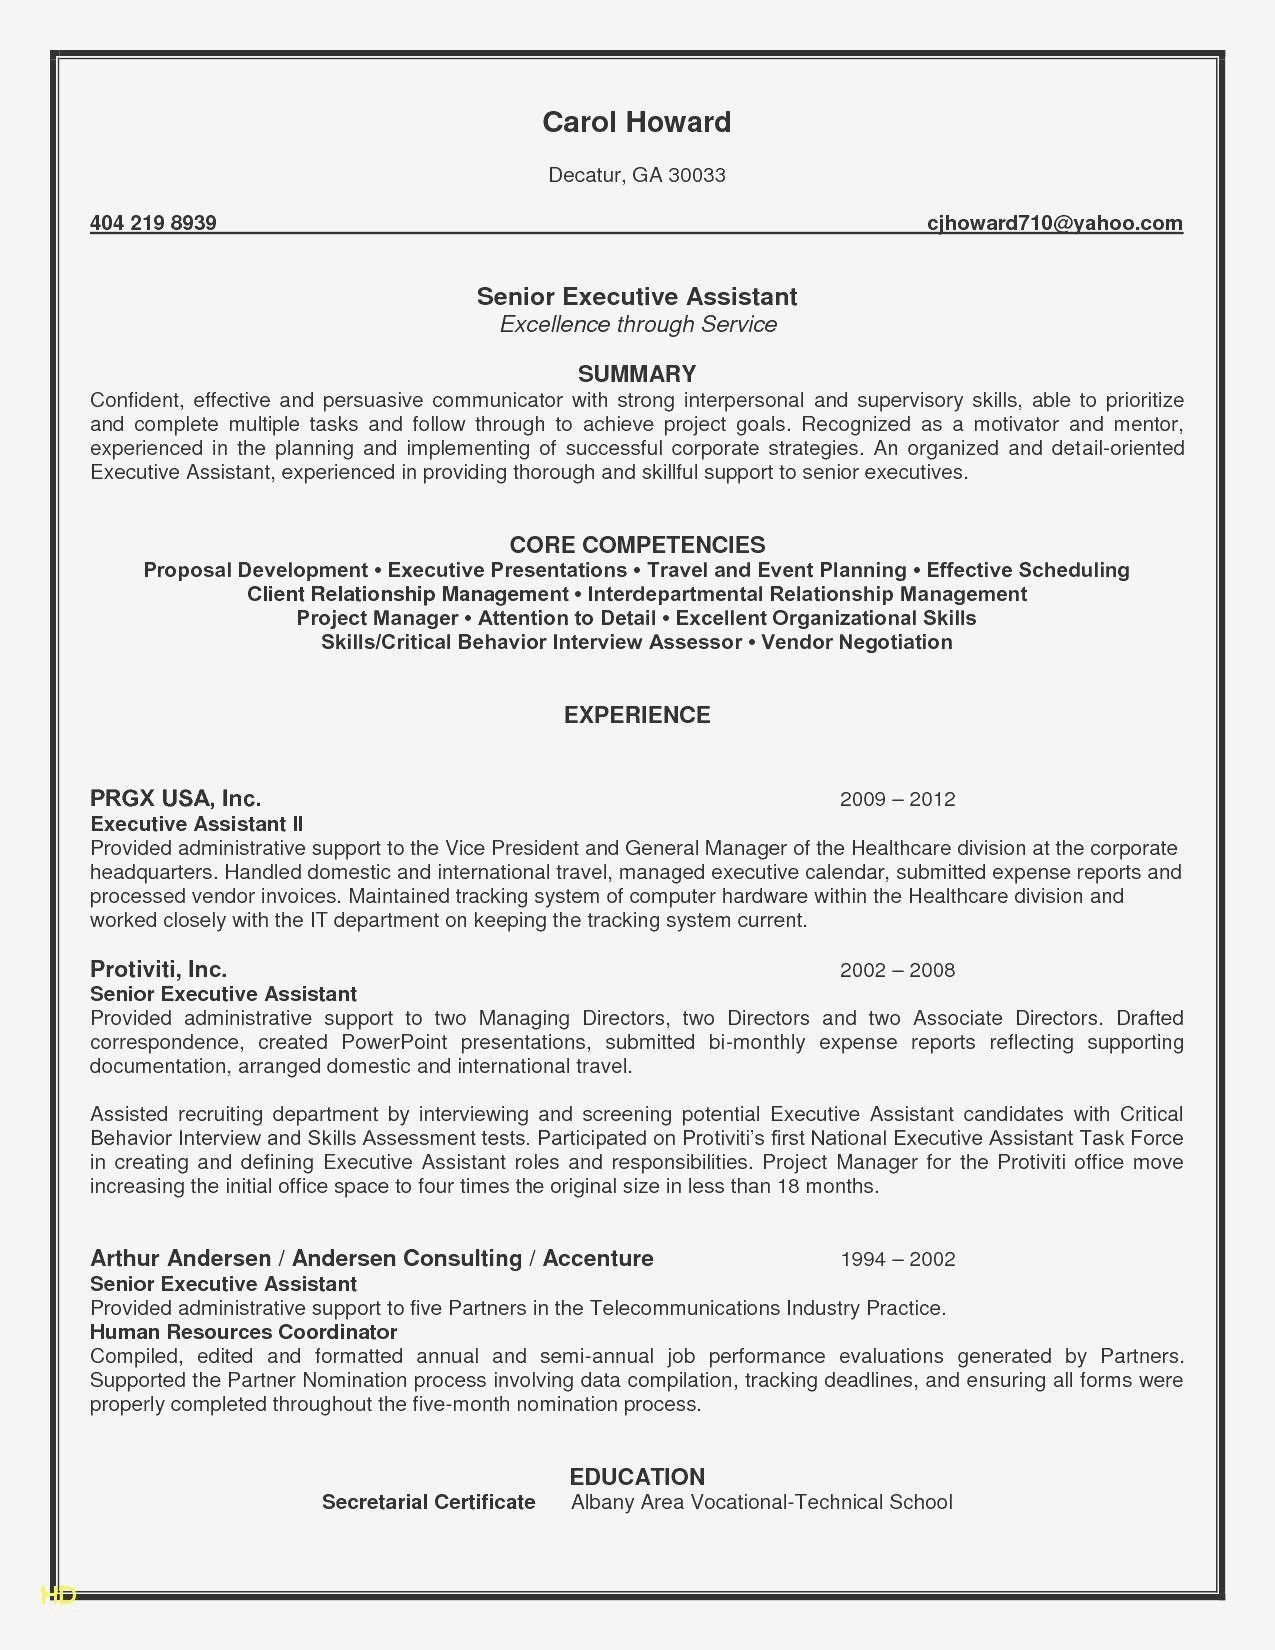 Resume Summary for Administrative assistant Best Of